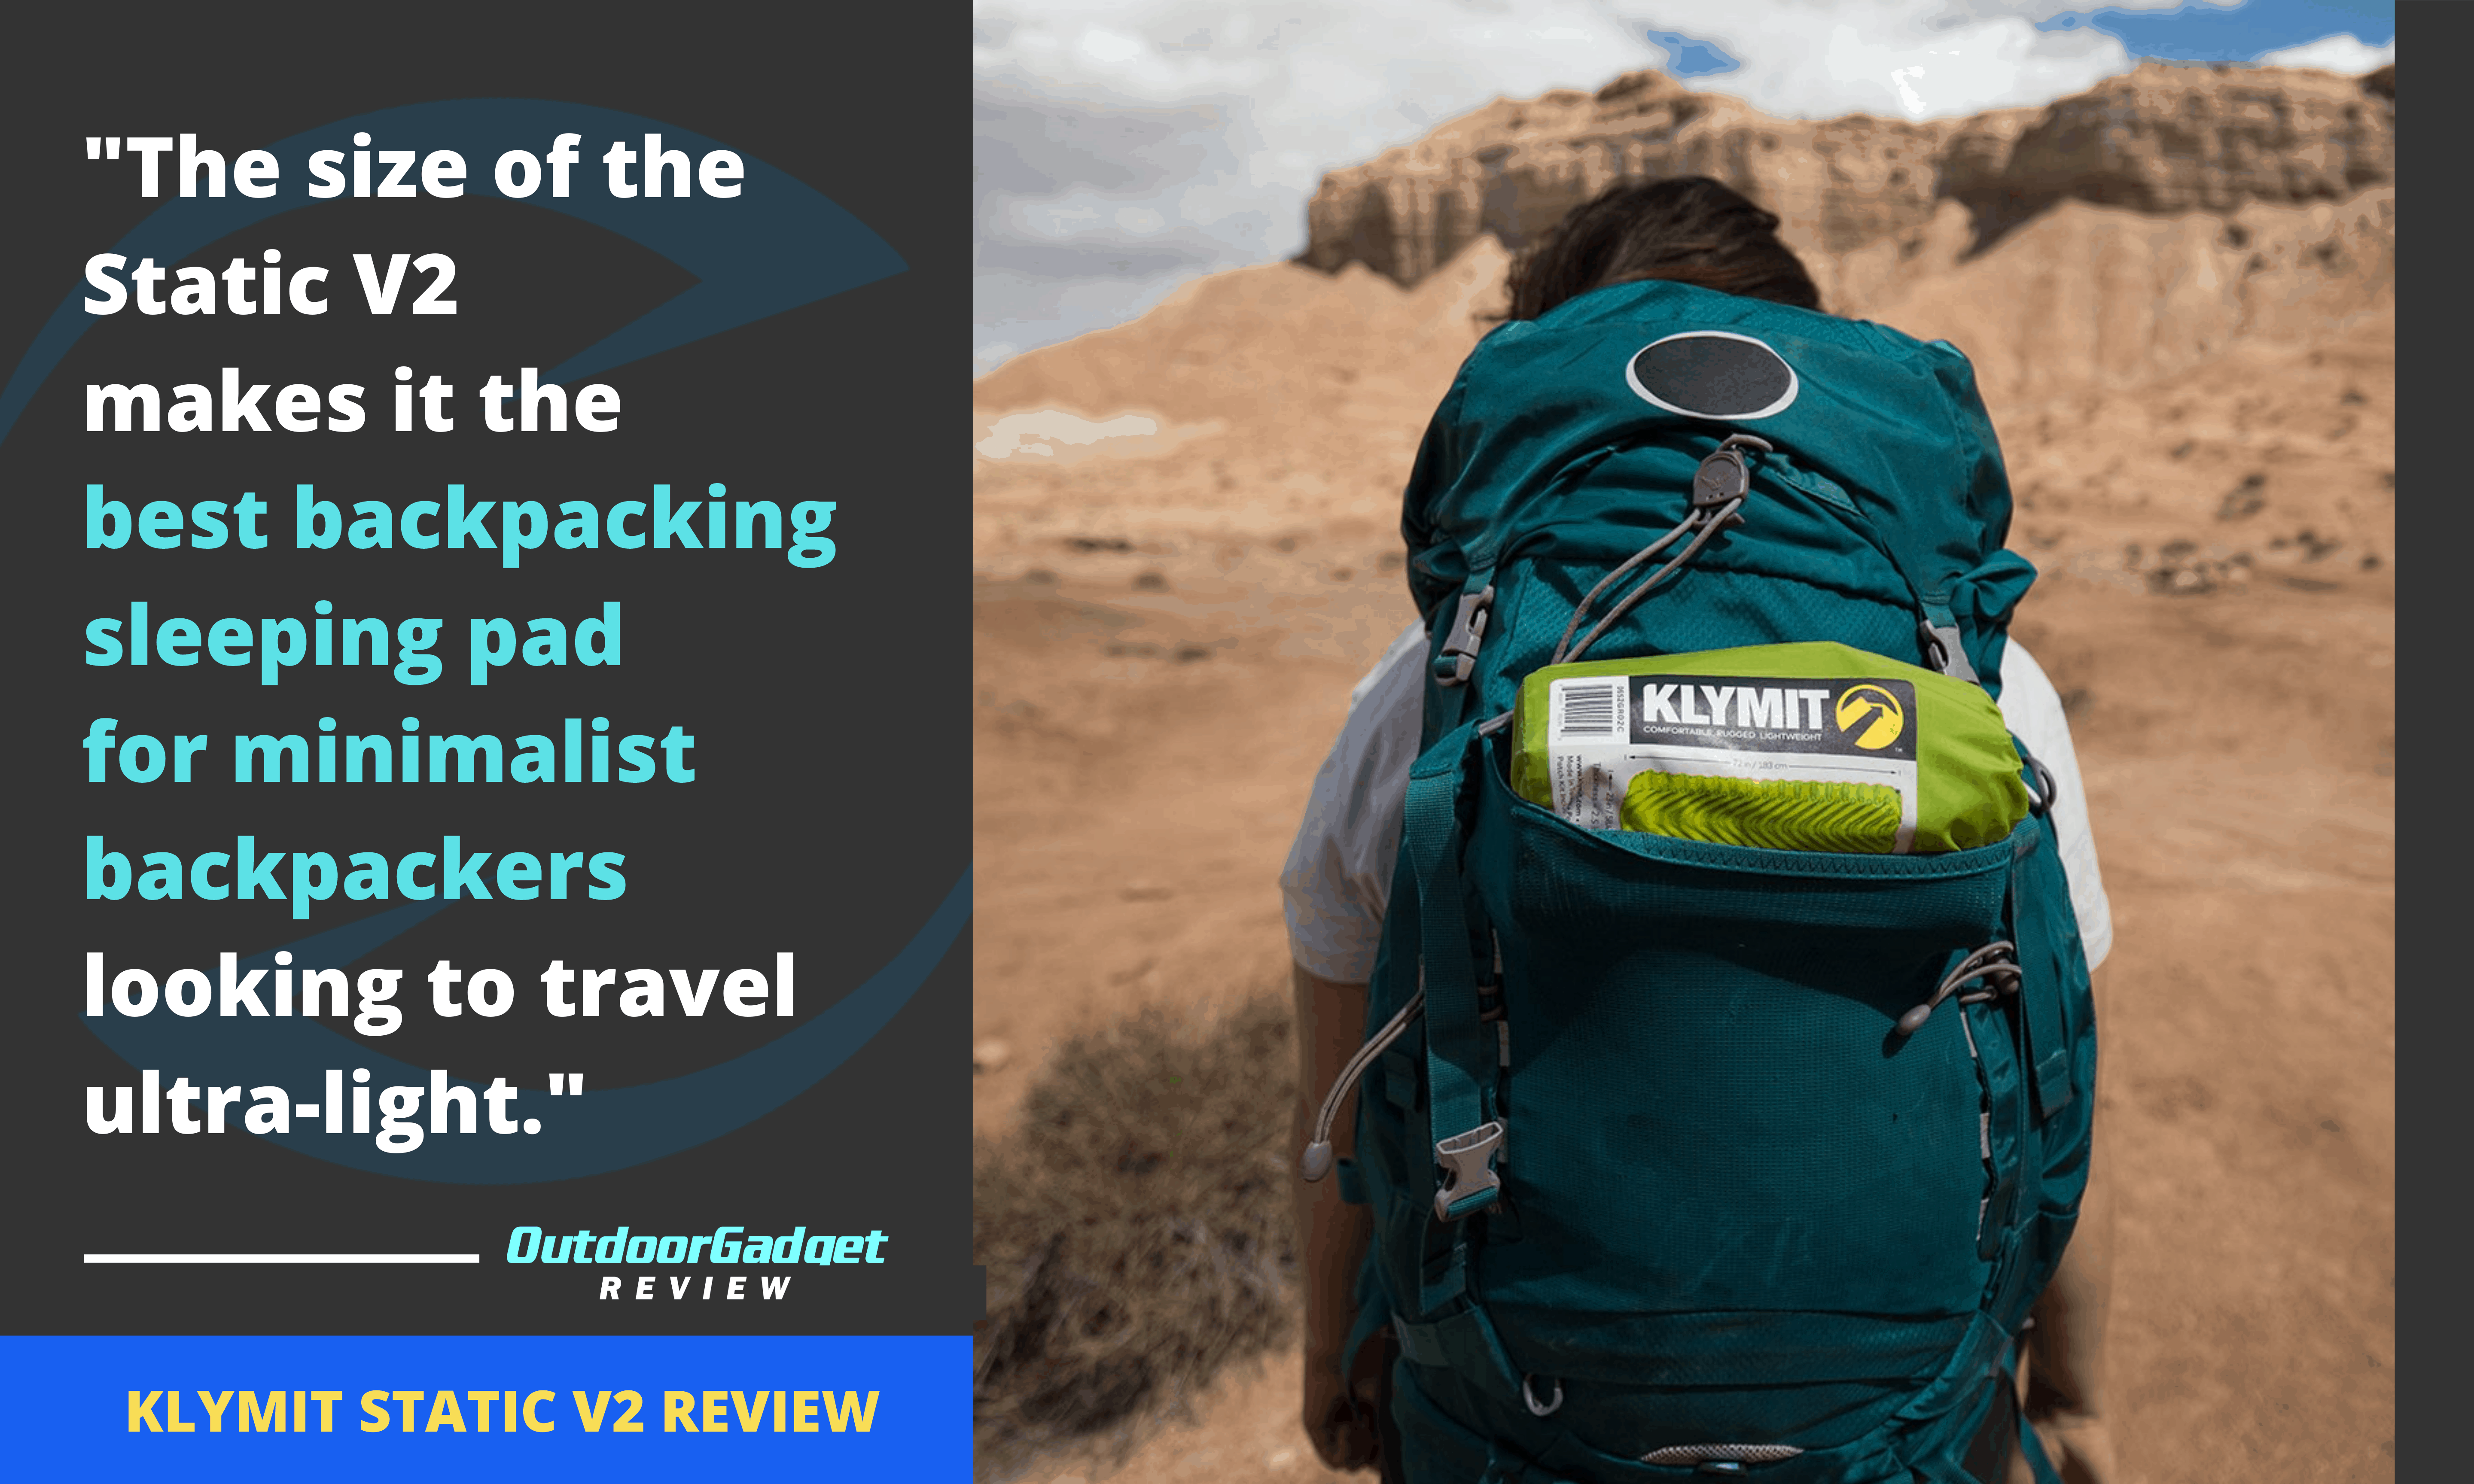 The size of the Static V2 make it the best backpacking sleeping pad type for minimalist backpackers looking to travel ultra-light. (2)